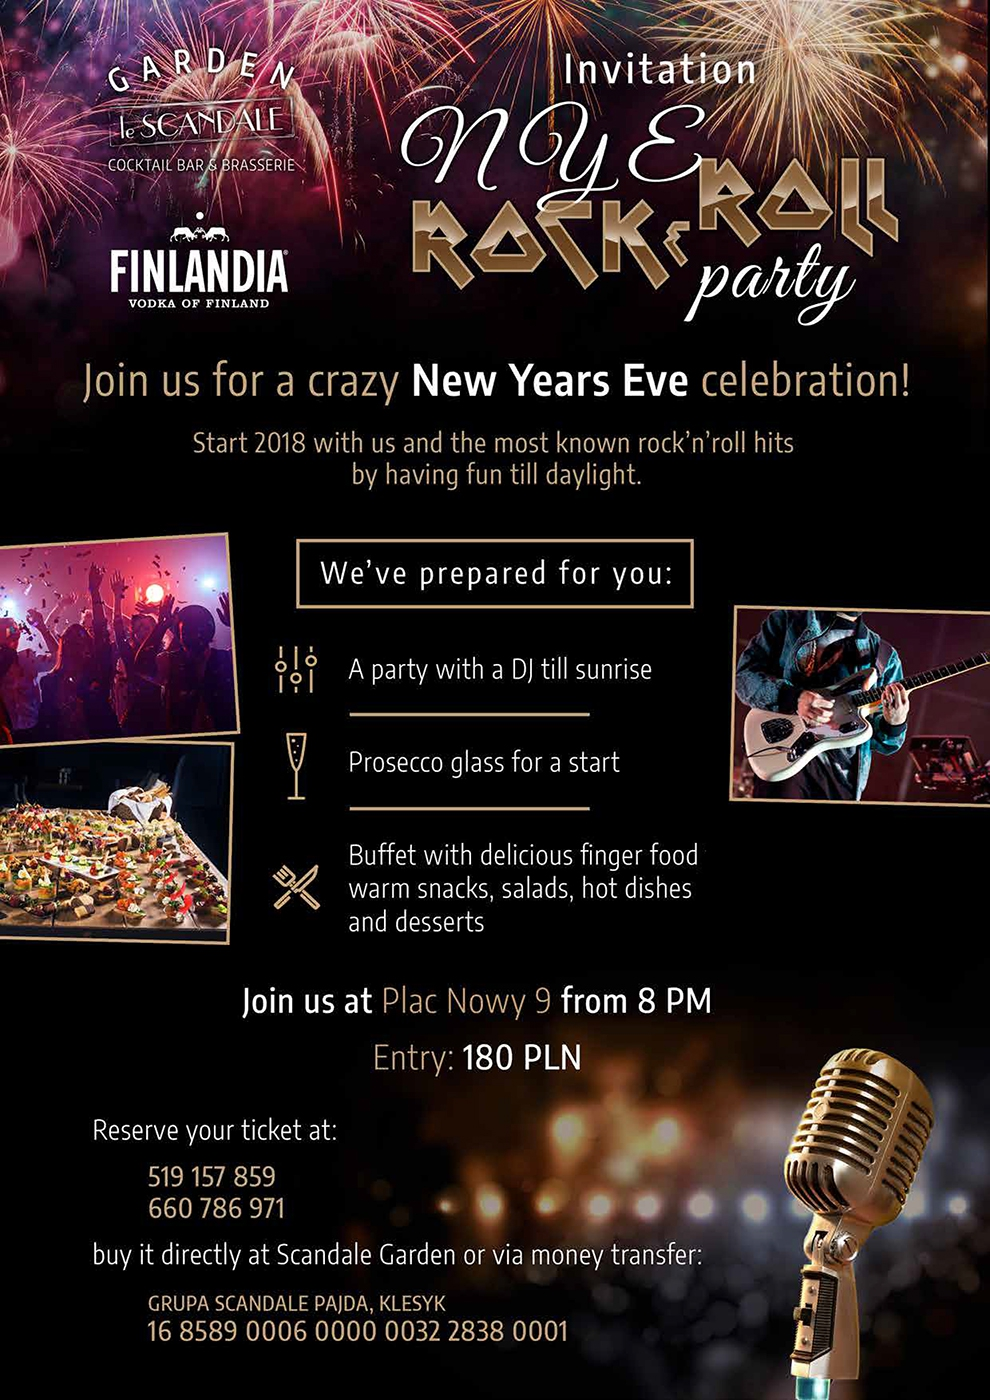 New Years Eve in Scandale